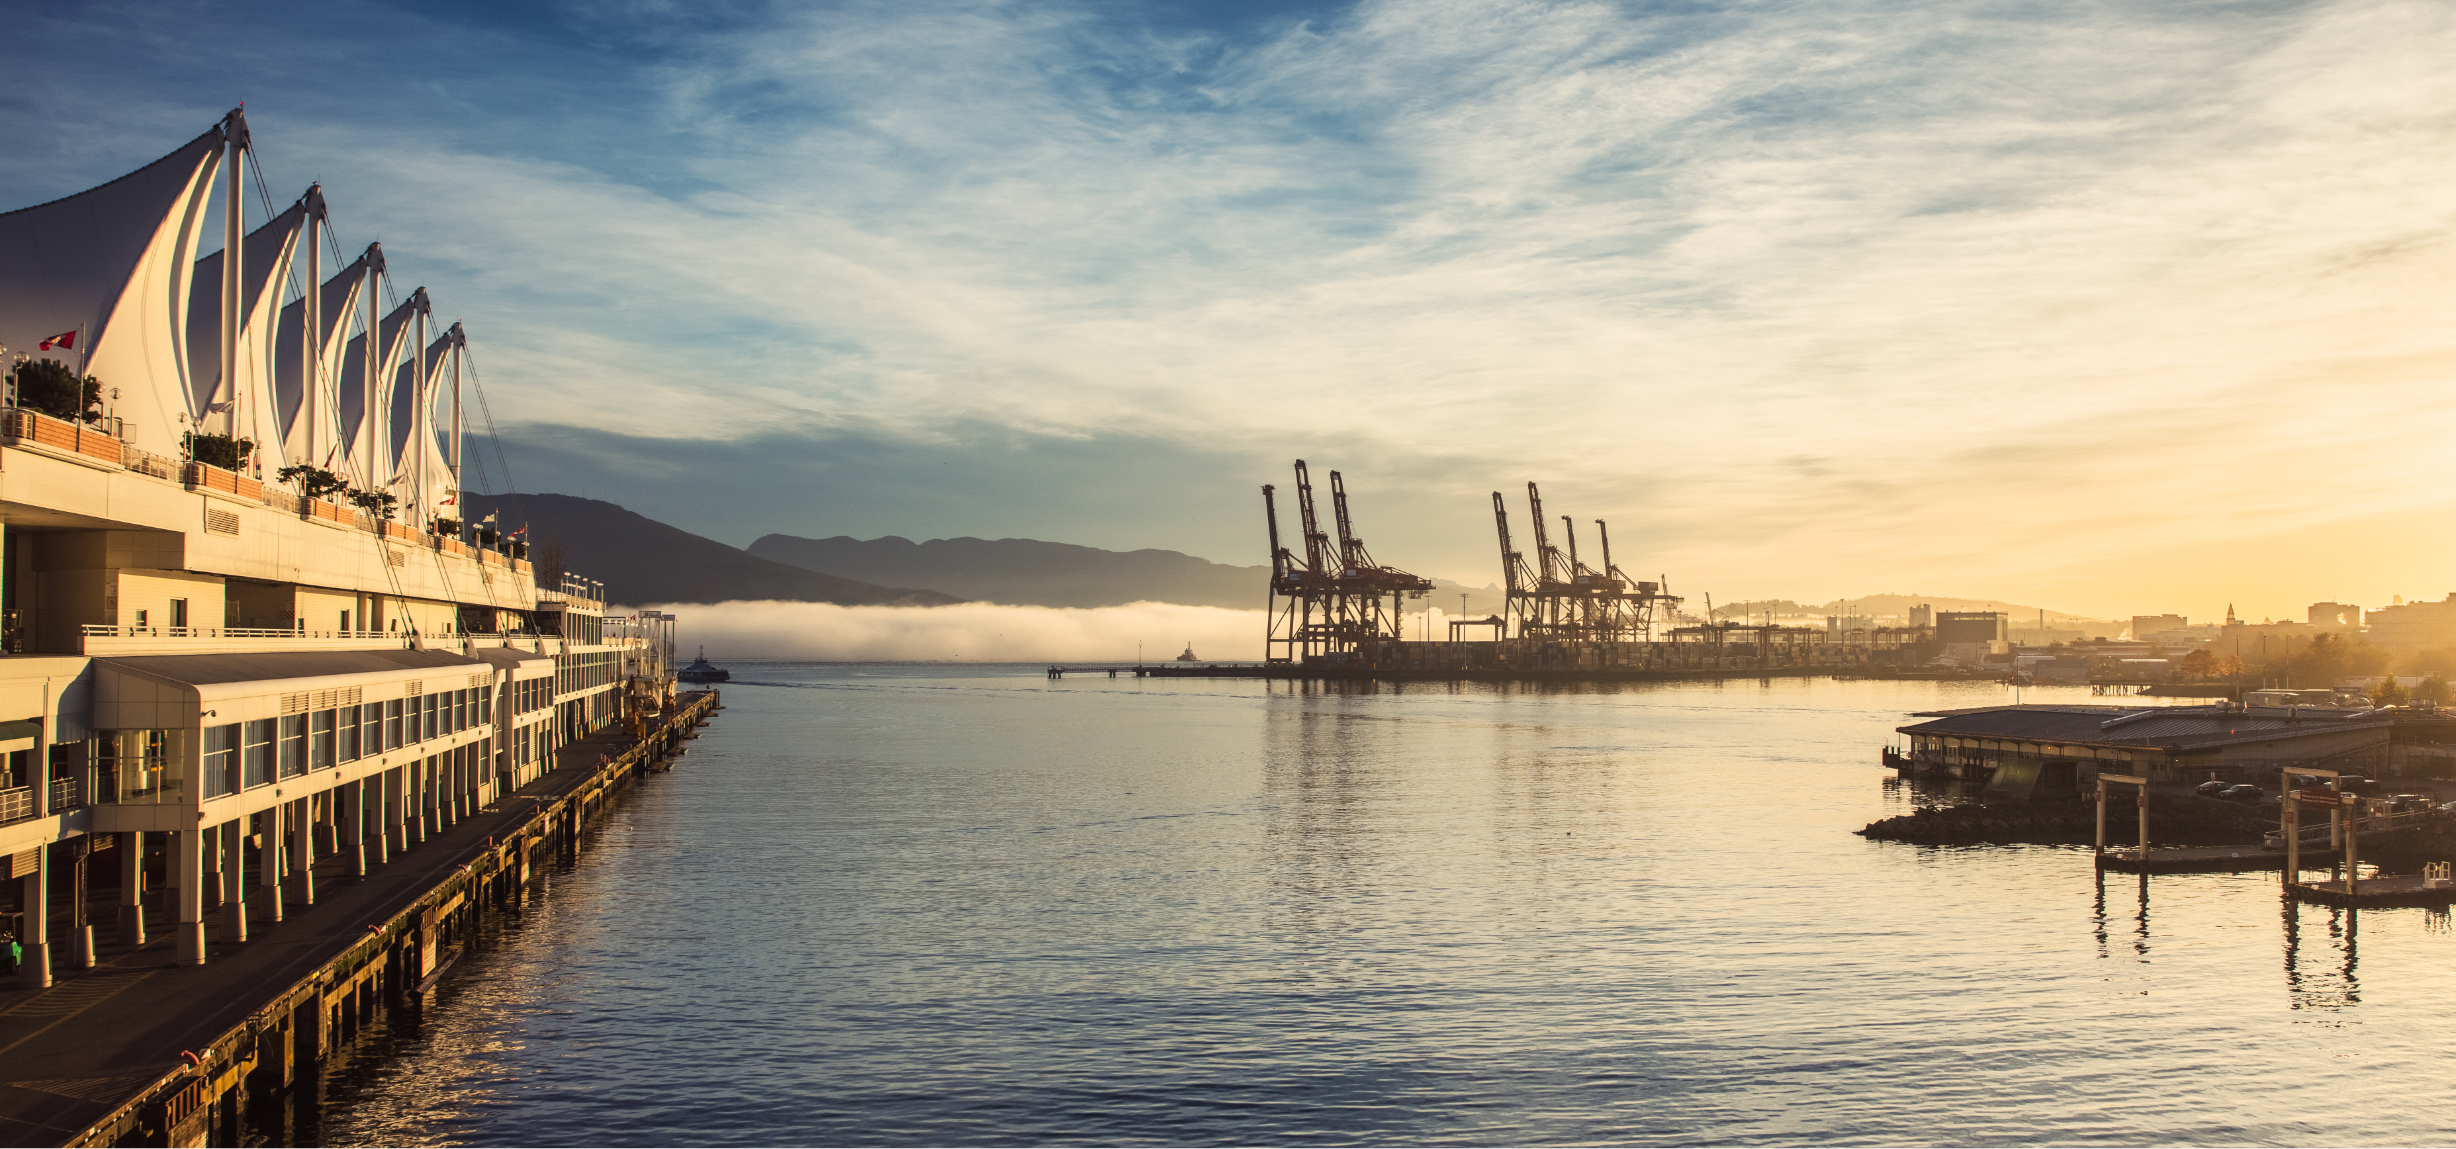 Vancouver Port at sunset